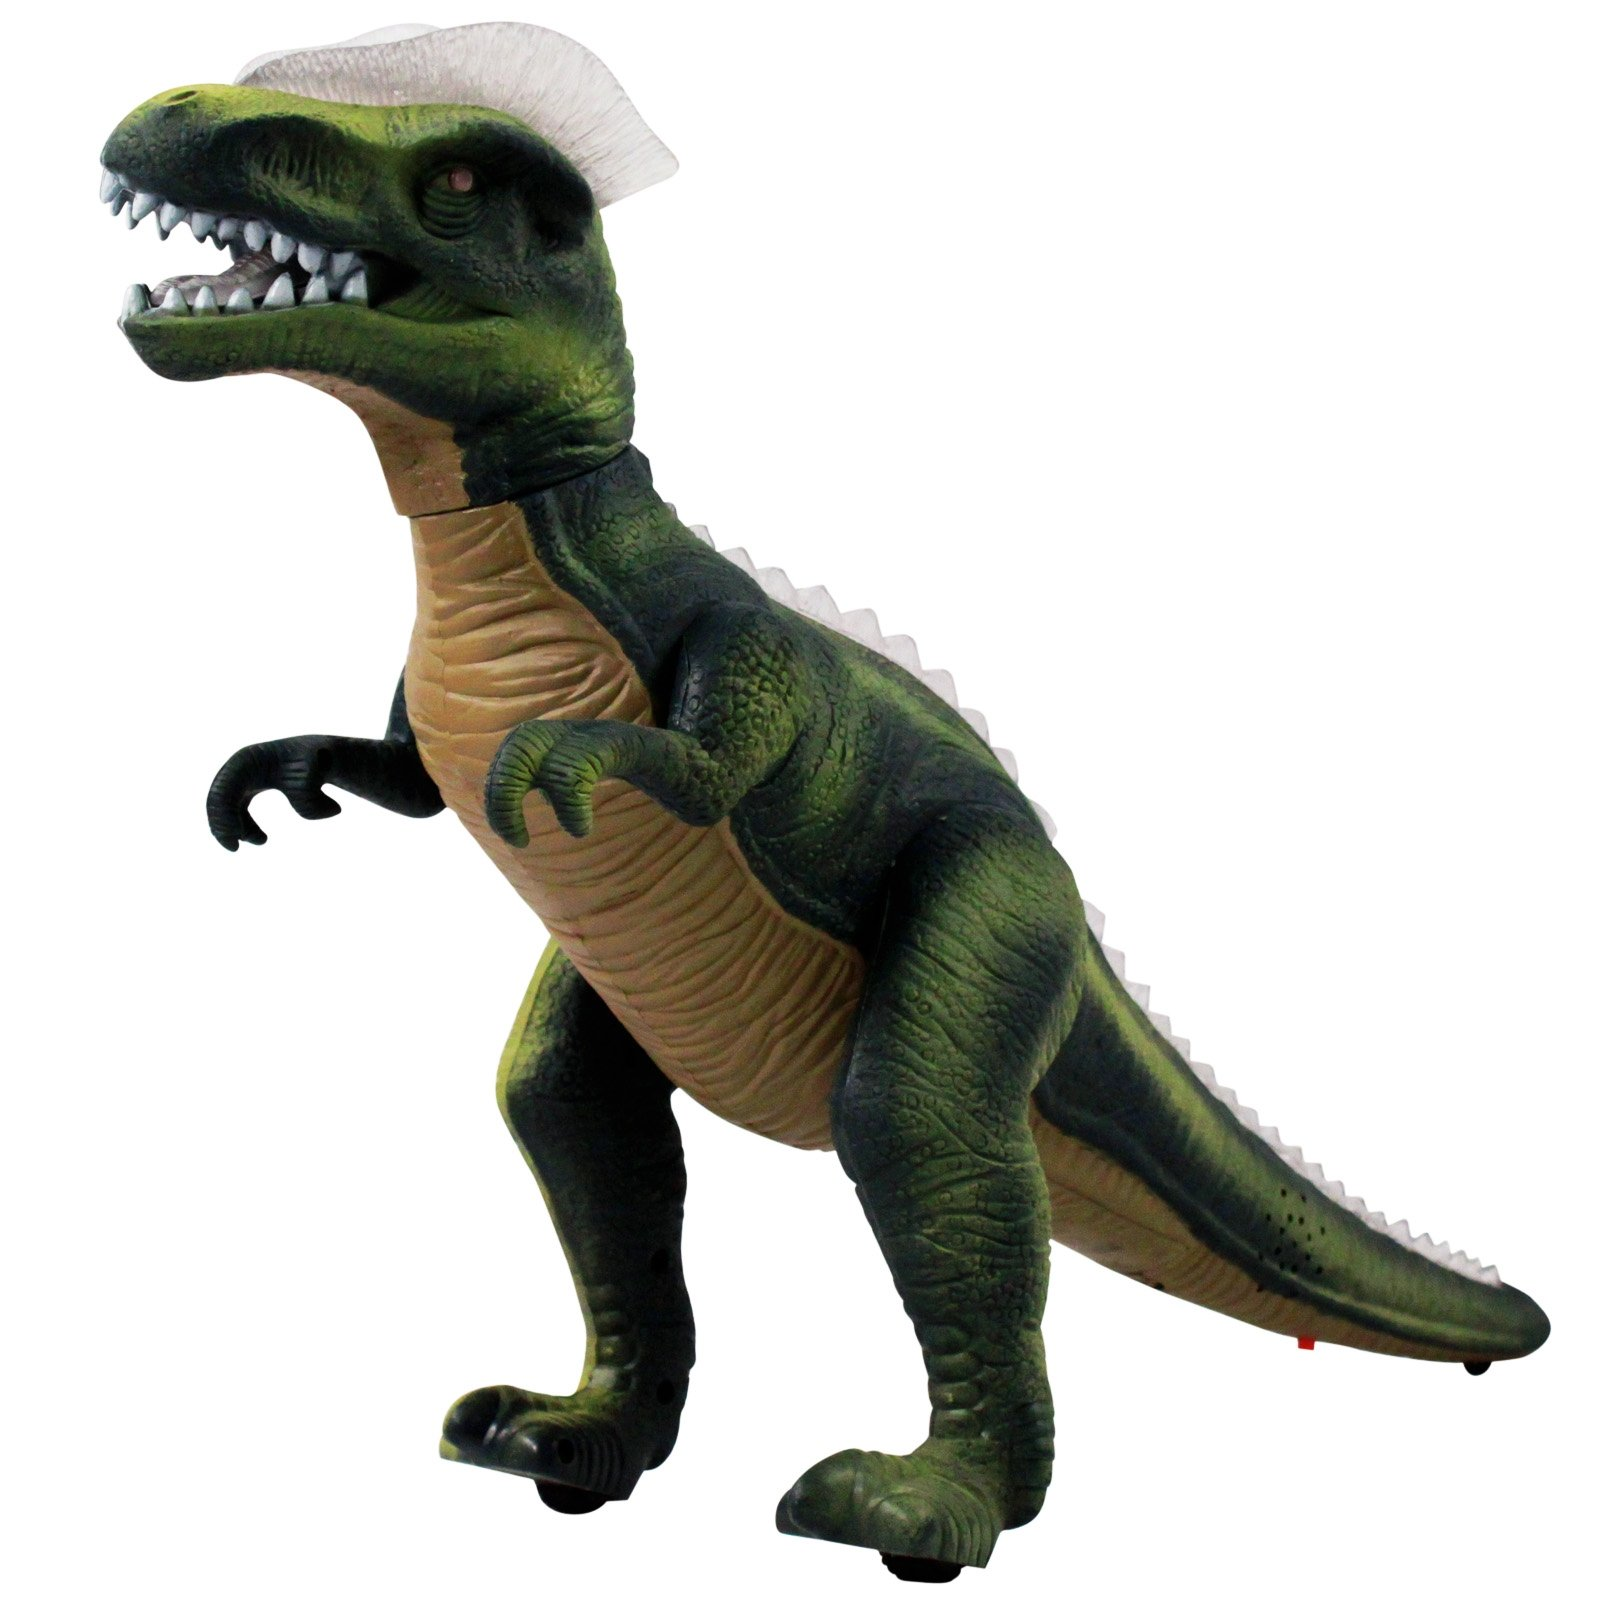 Dino Control Jurassic Rex RC Dinosaur Predator With Lights and Sounds - Green